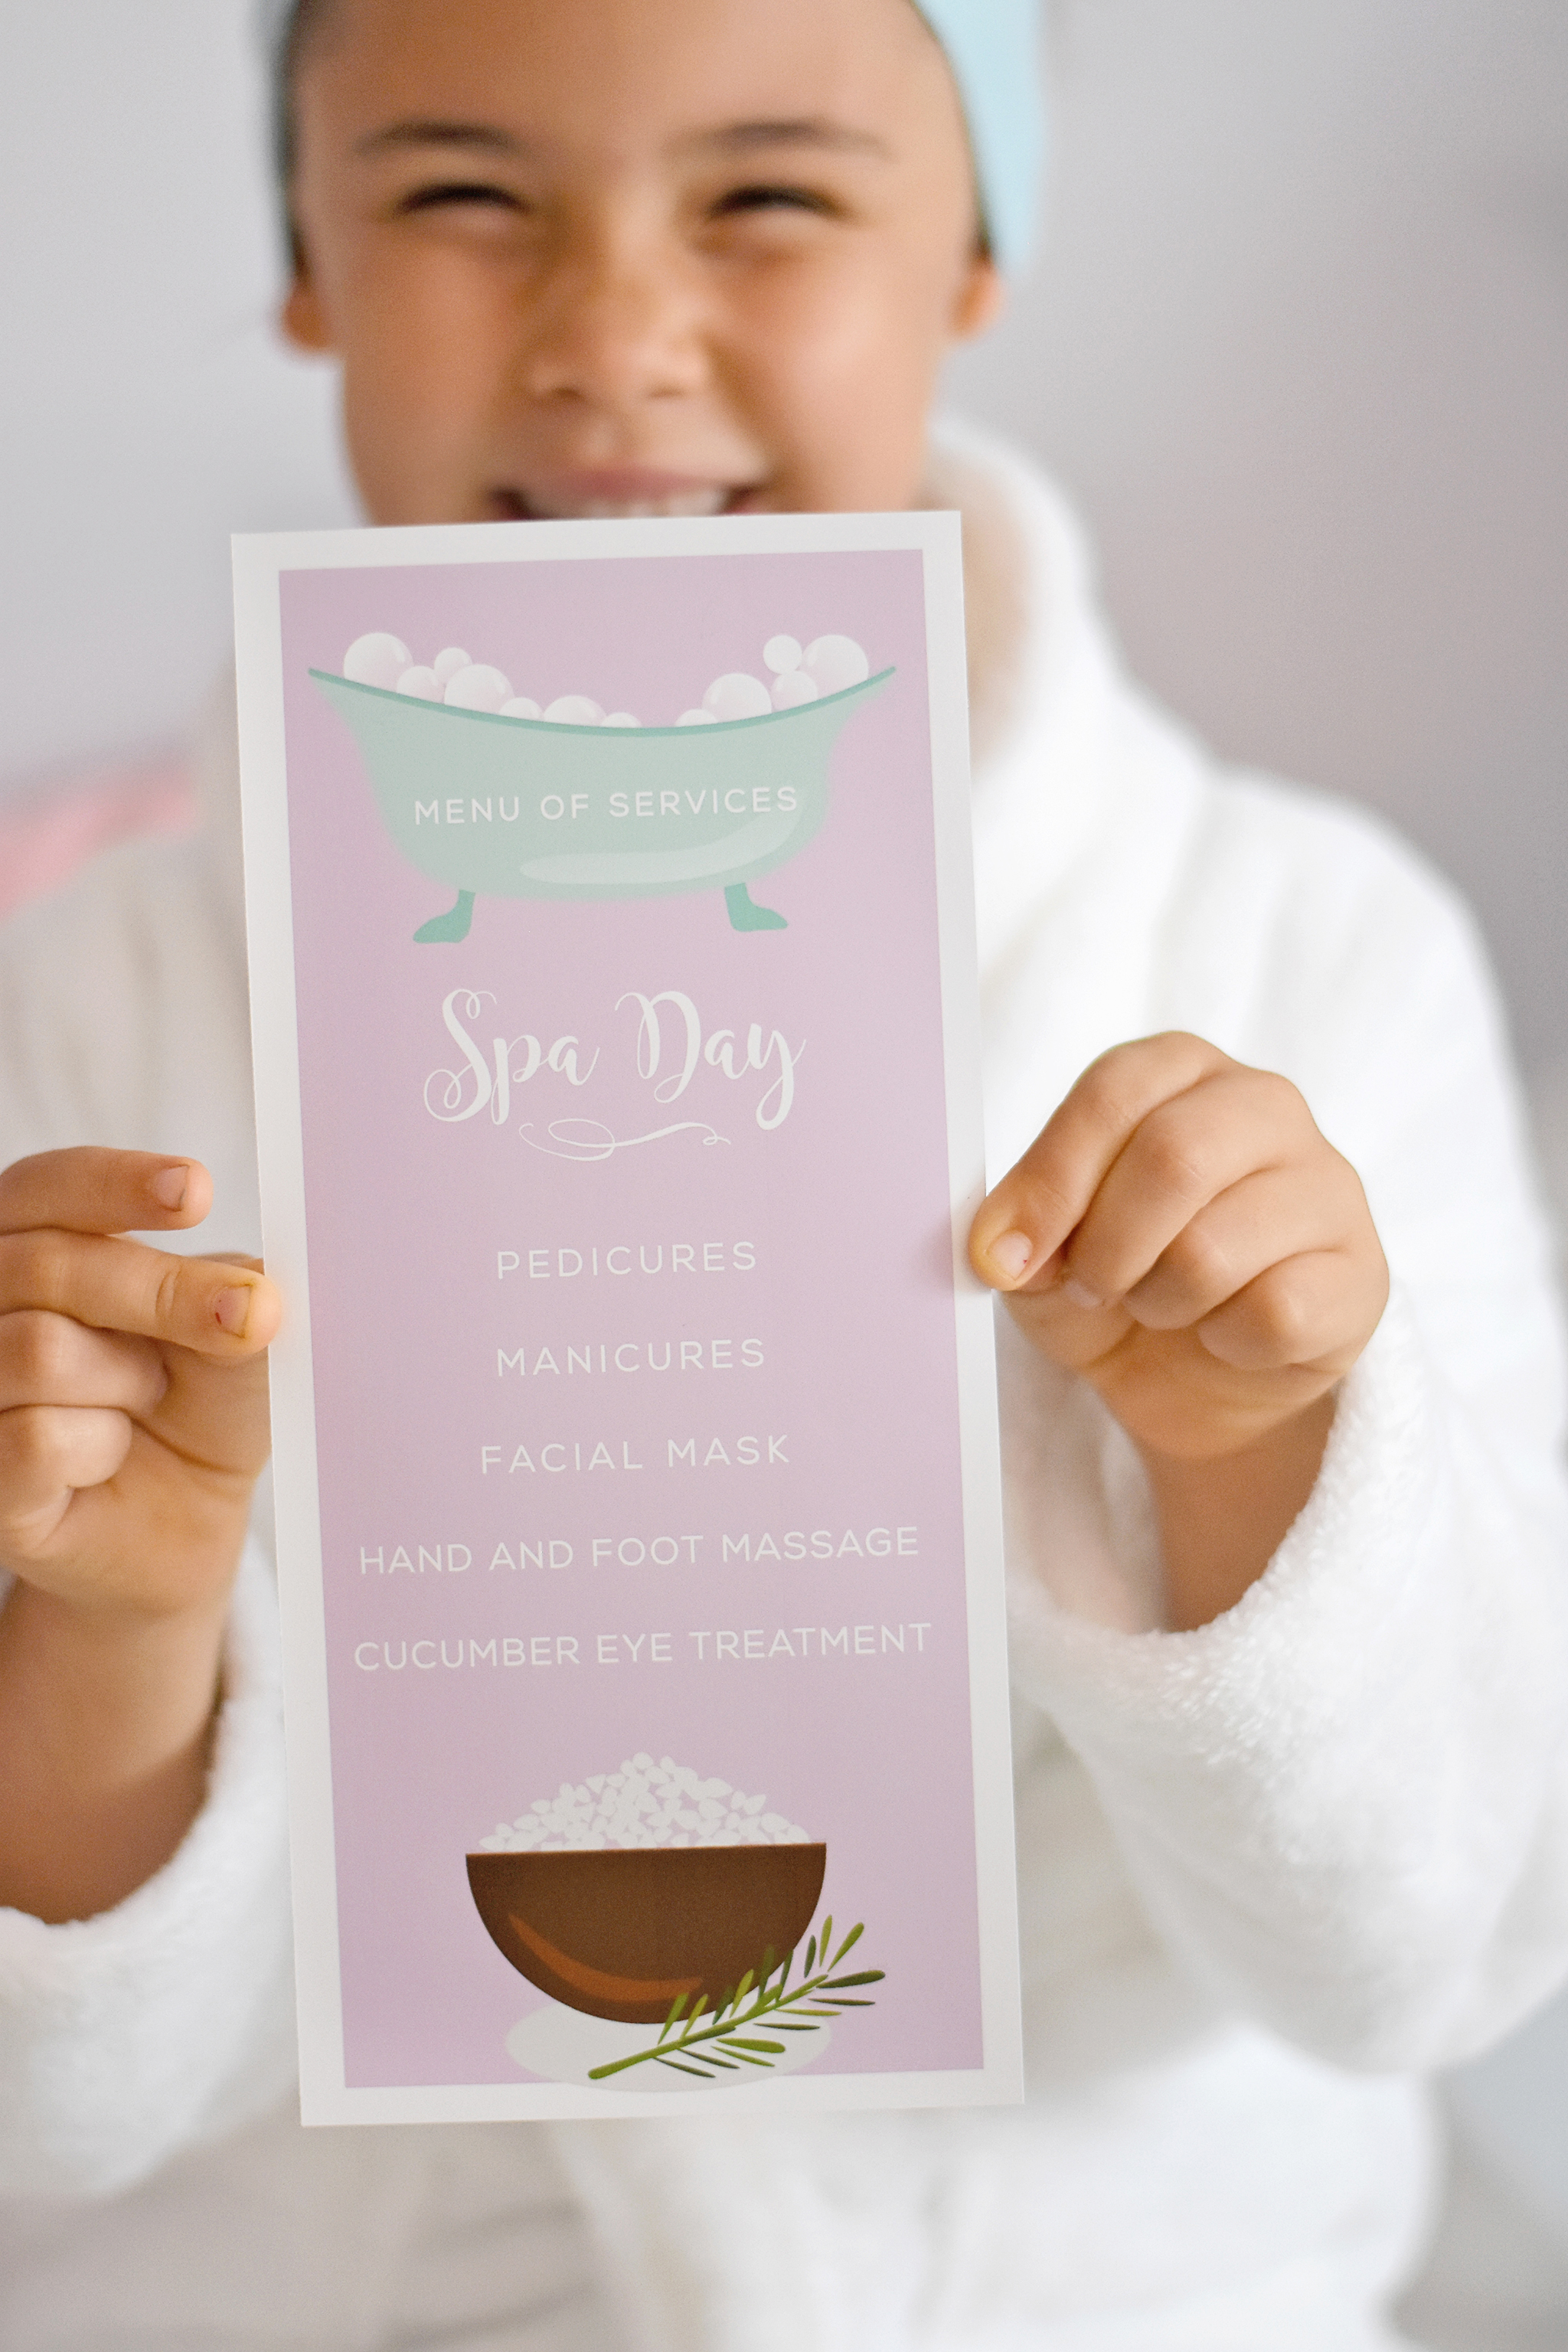 Spa Day Menu of Services